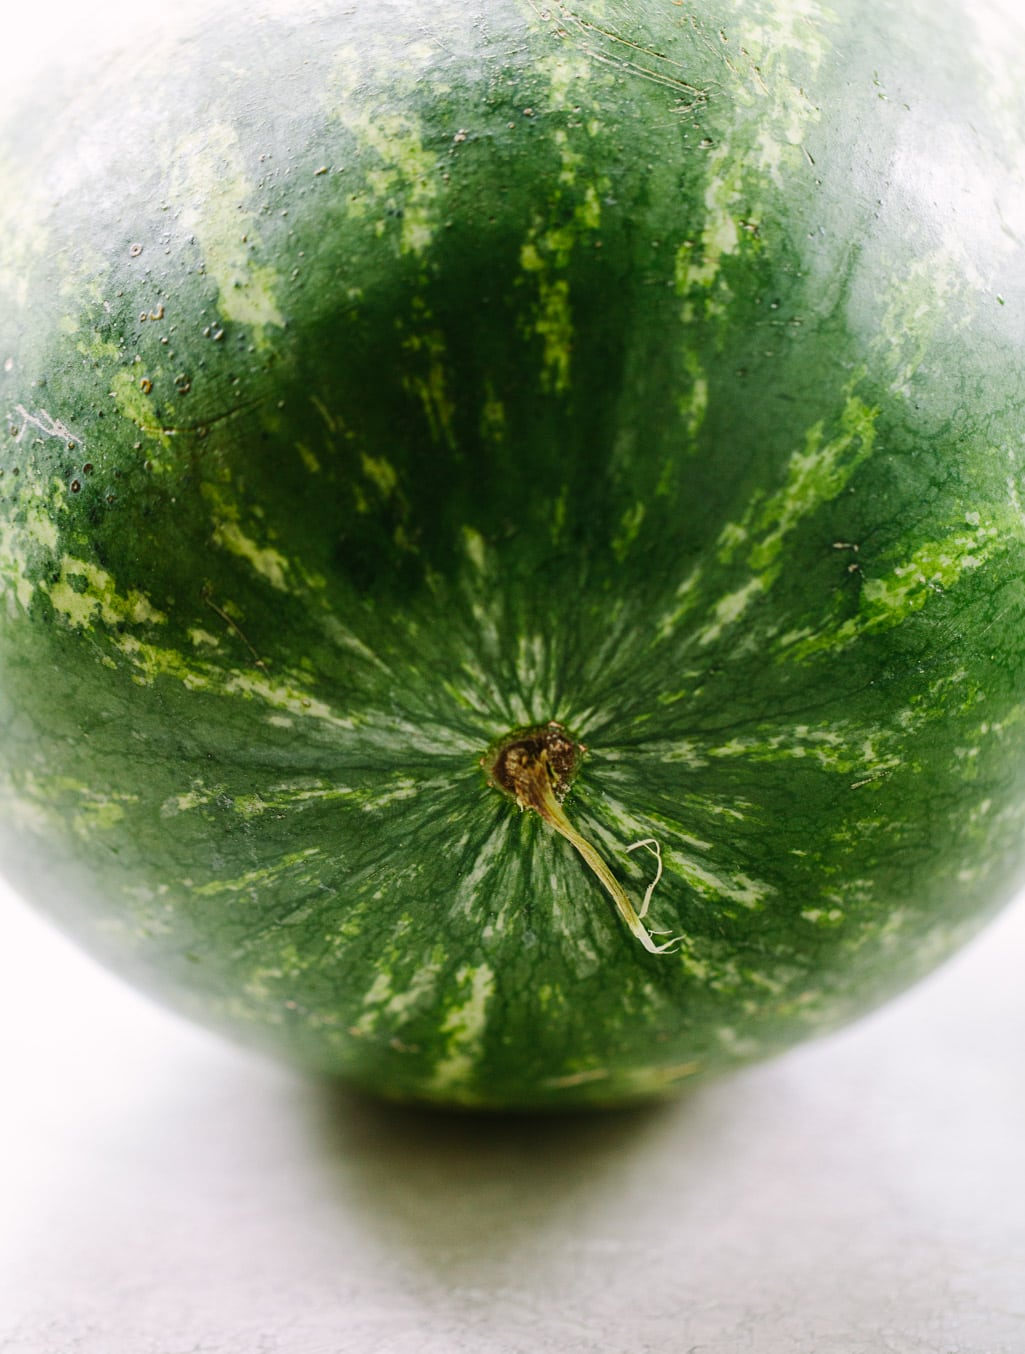 close up photo of a green seedless watermelon